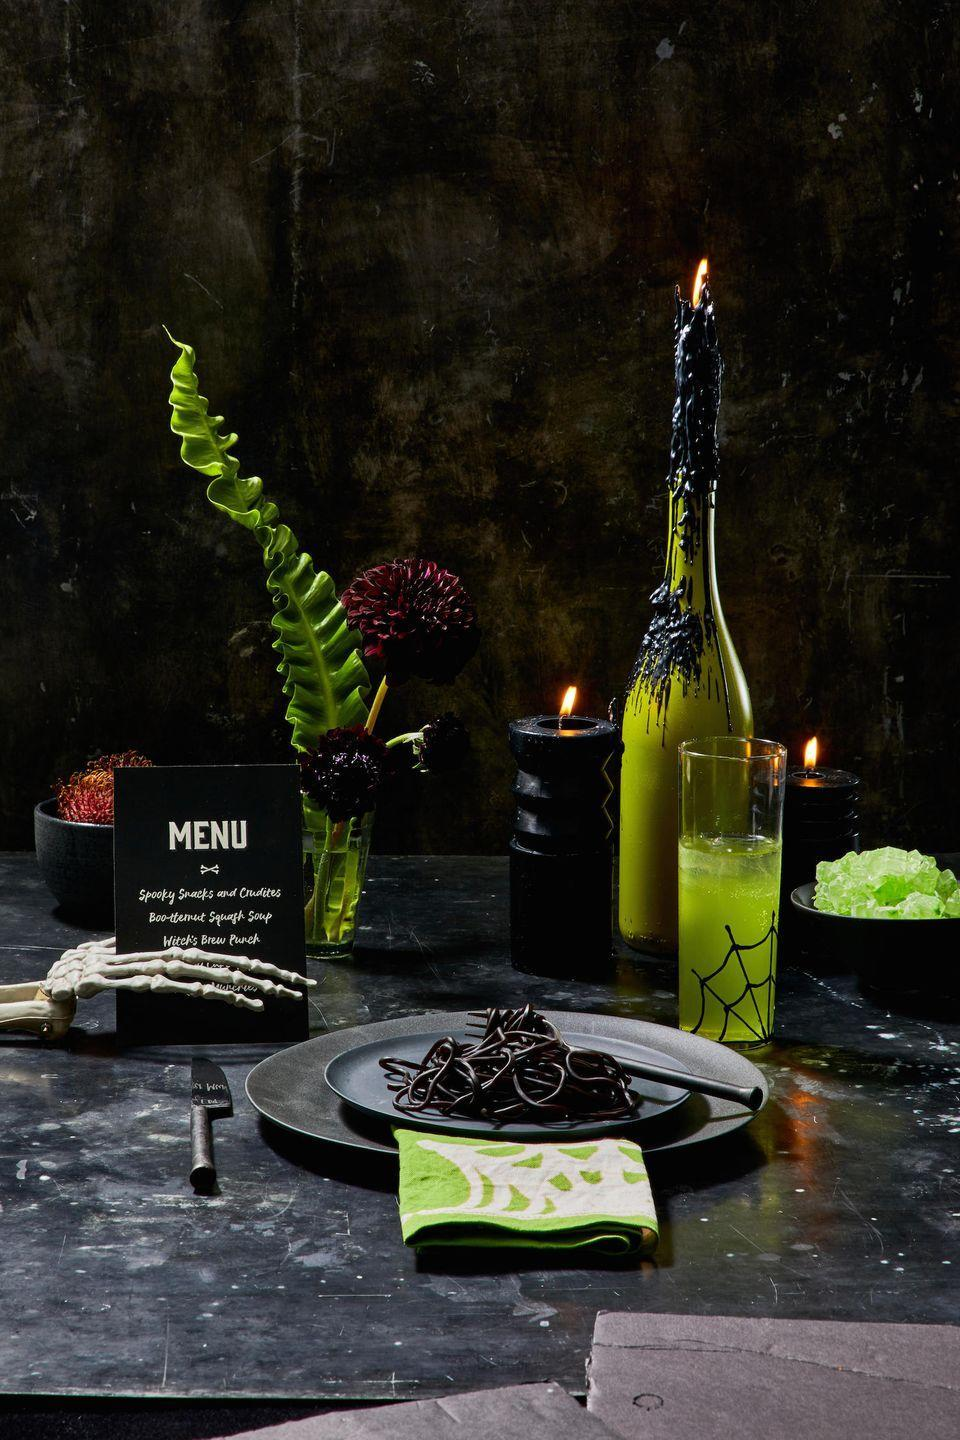 <p>Combine dark plates with bright accents for a tablescape that'll spook (and delight!) your guests. Be sure to place menus in skeleton hands and serve festive foods in colors like black and green. </p>